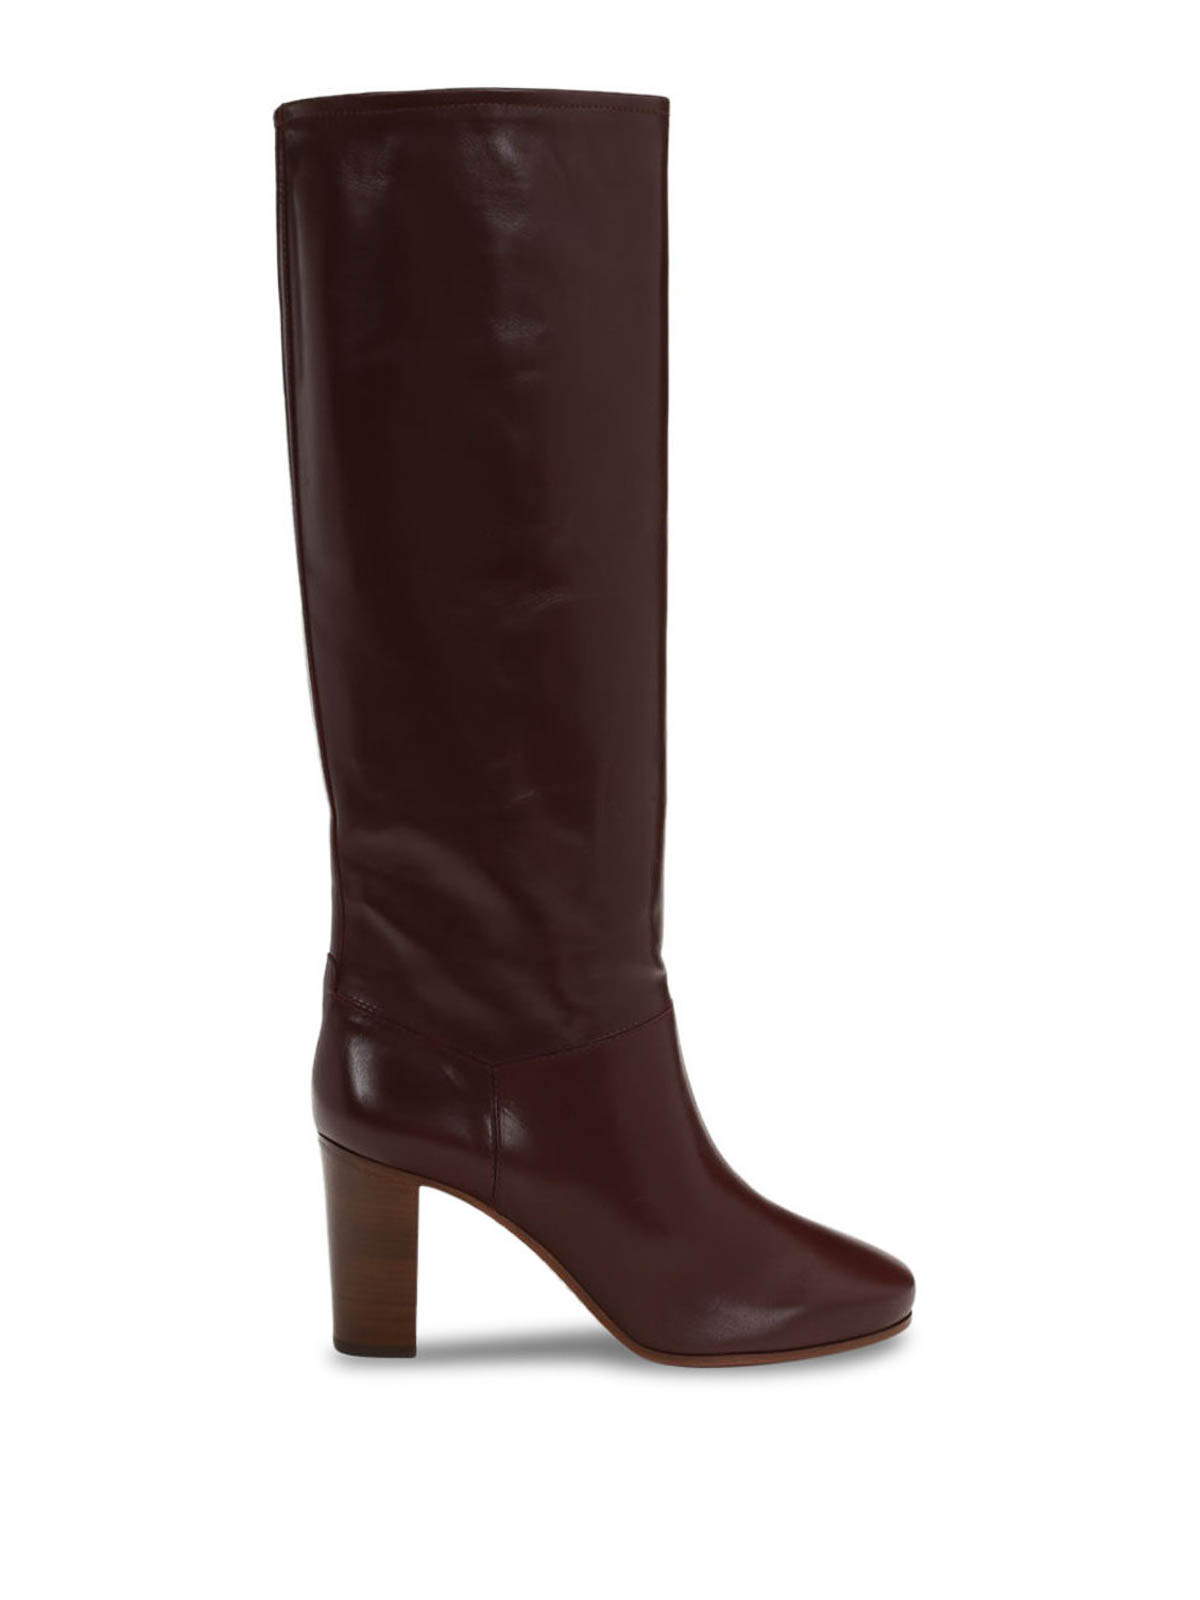 Céline Leather Boots